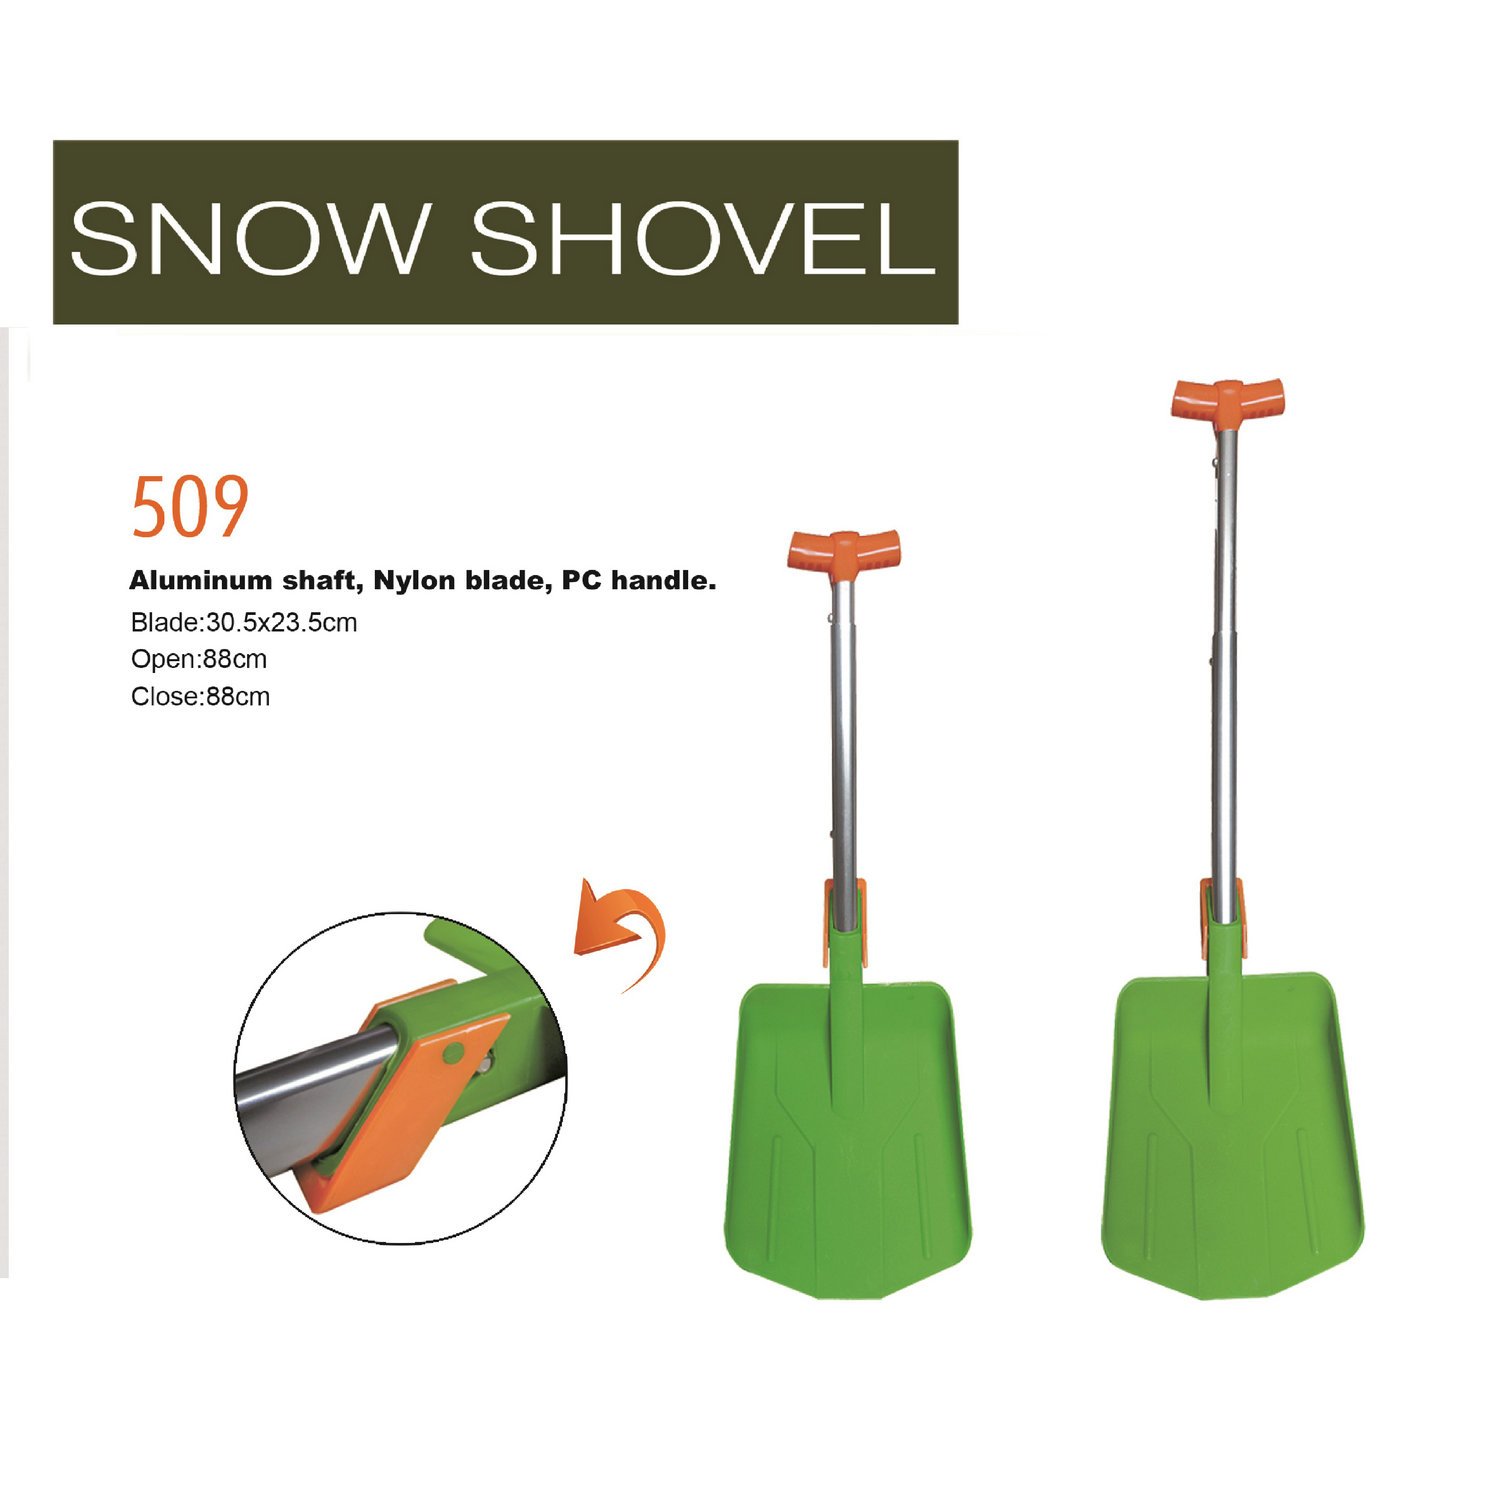 Snow shovel 509